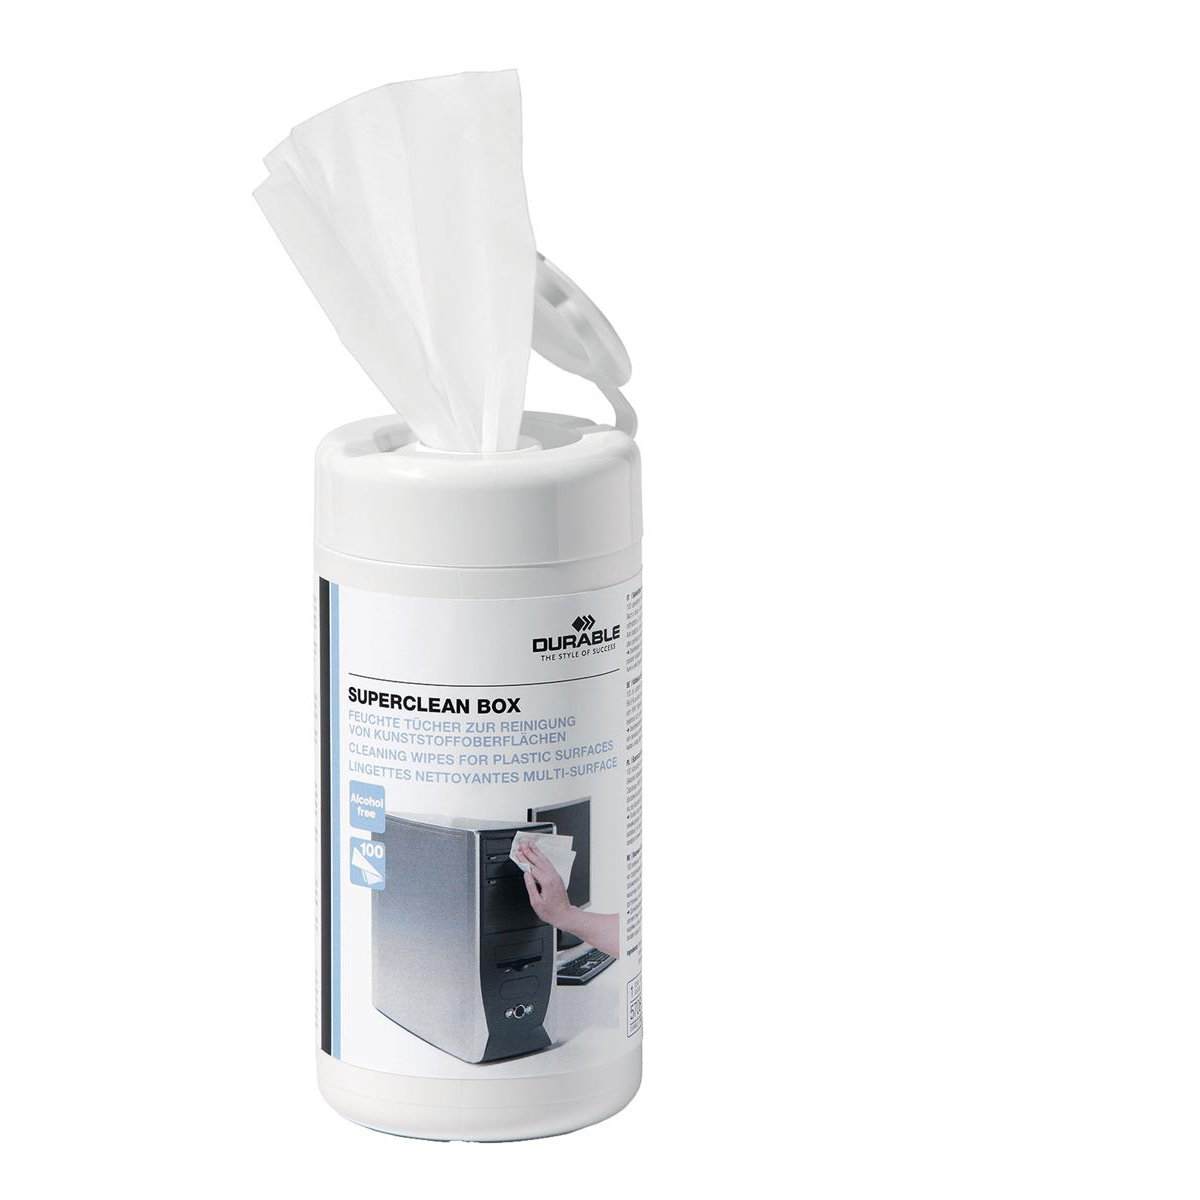 Image for Durable Superclean Tub 100 Wipes 5708